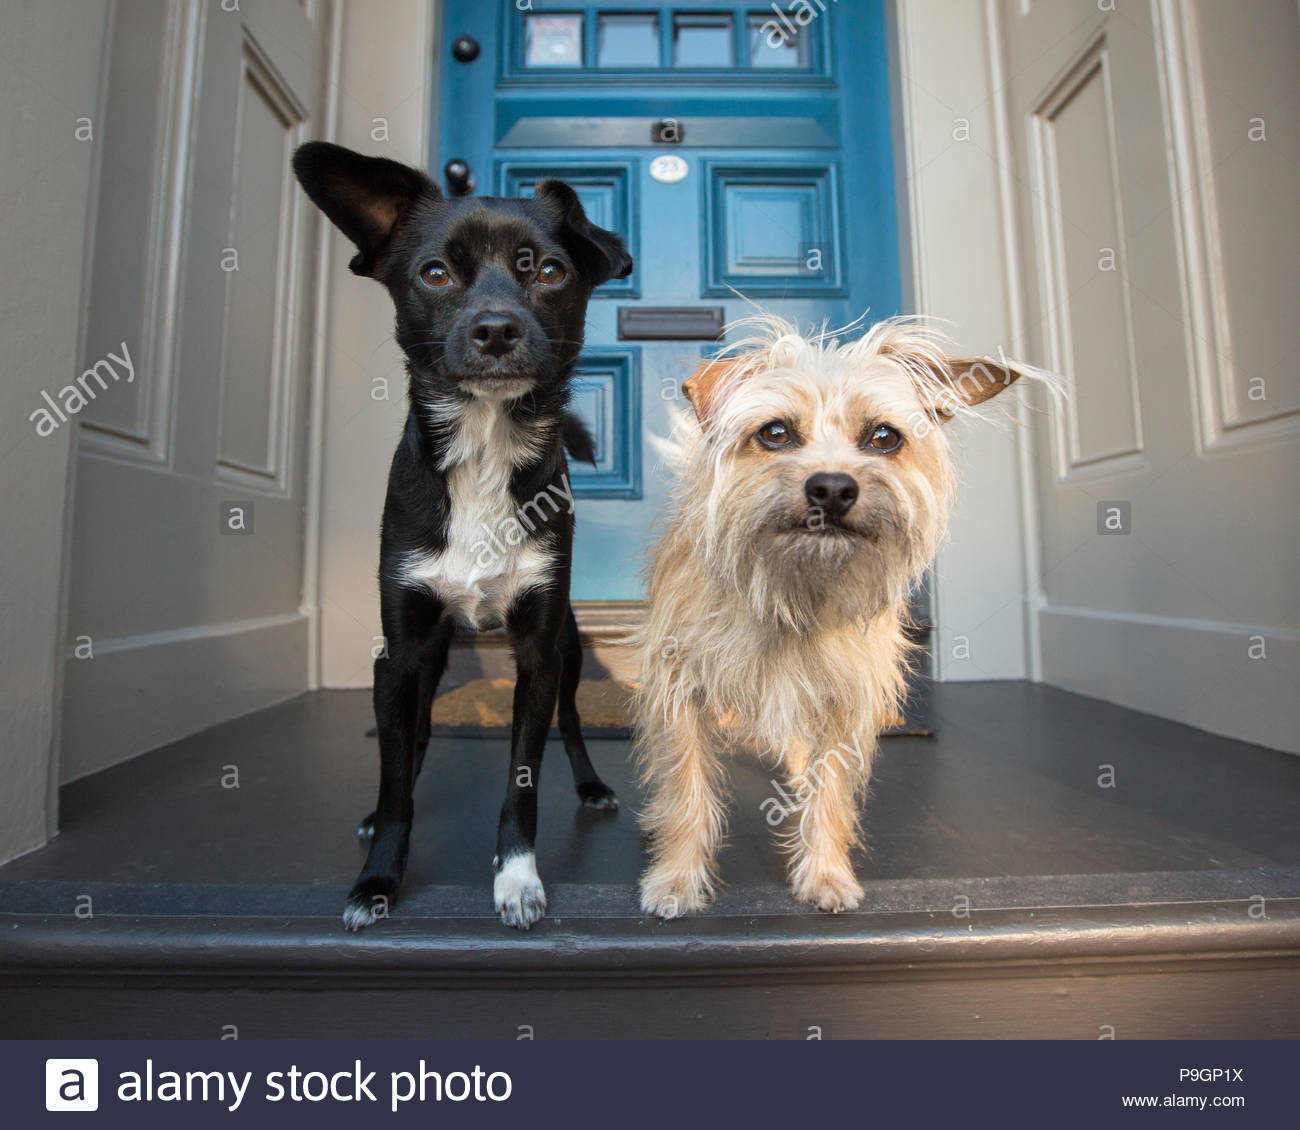 Small black terrier mix and small white terrier dog standing in front of blue door - Stock Image